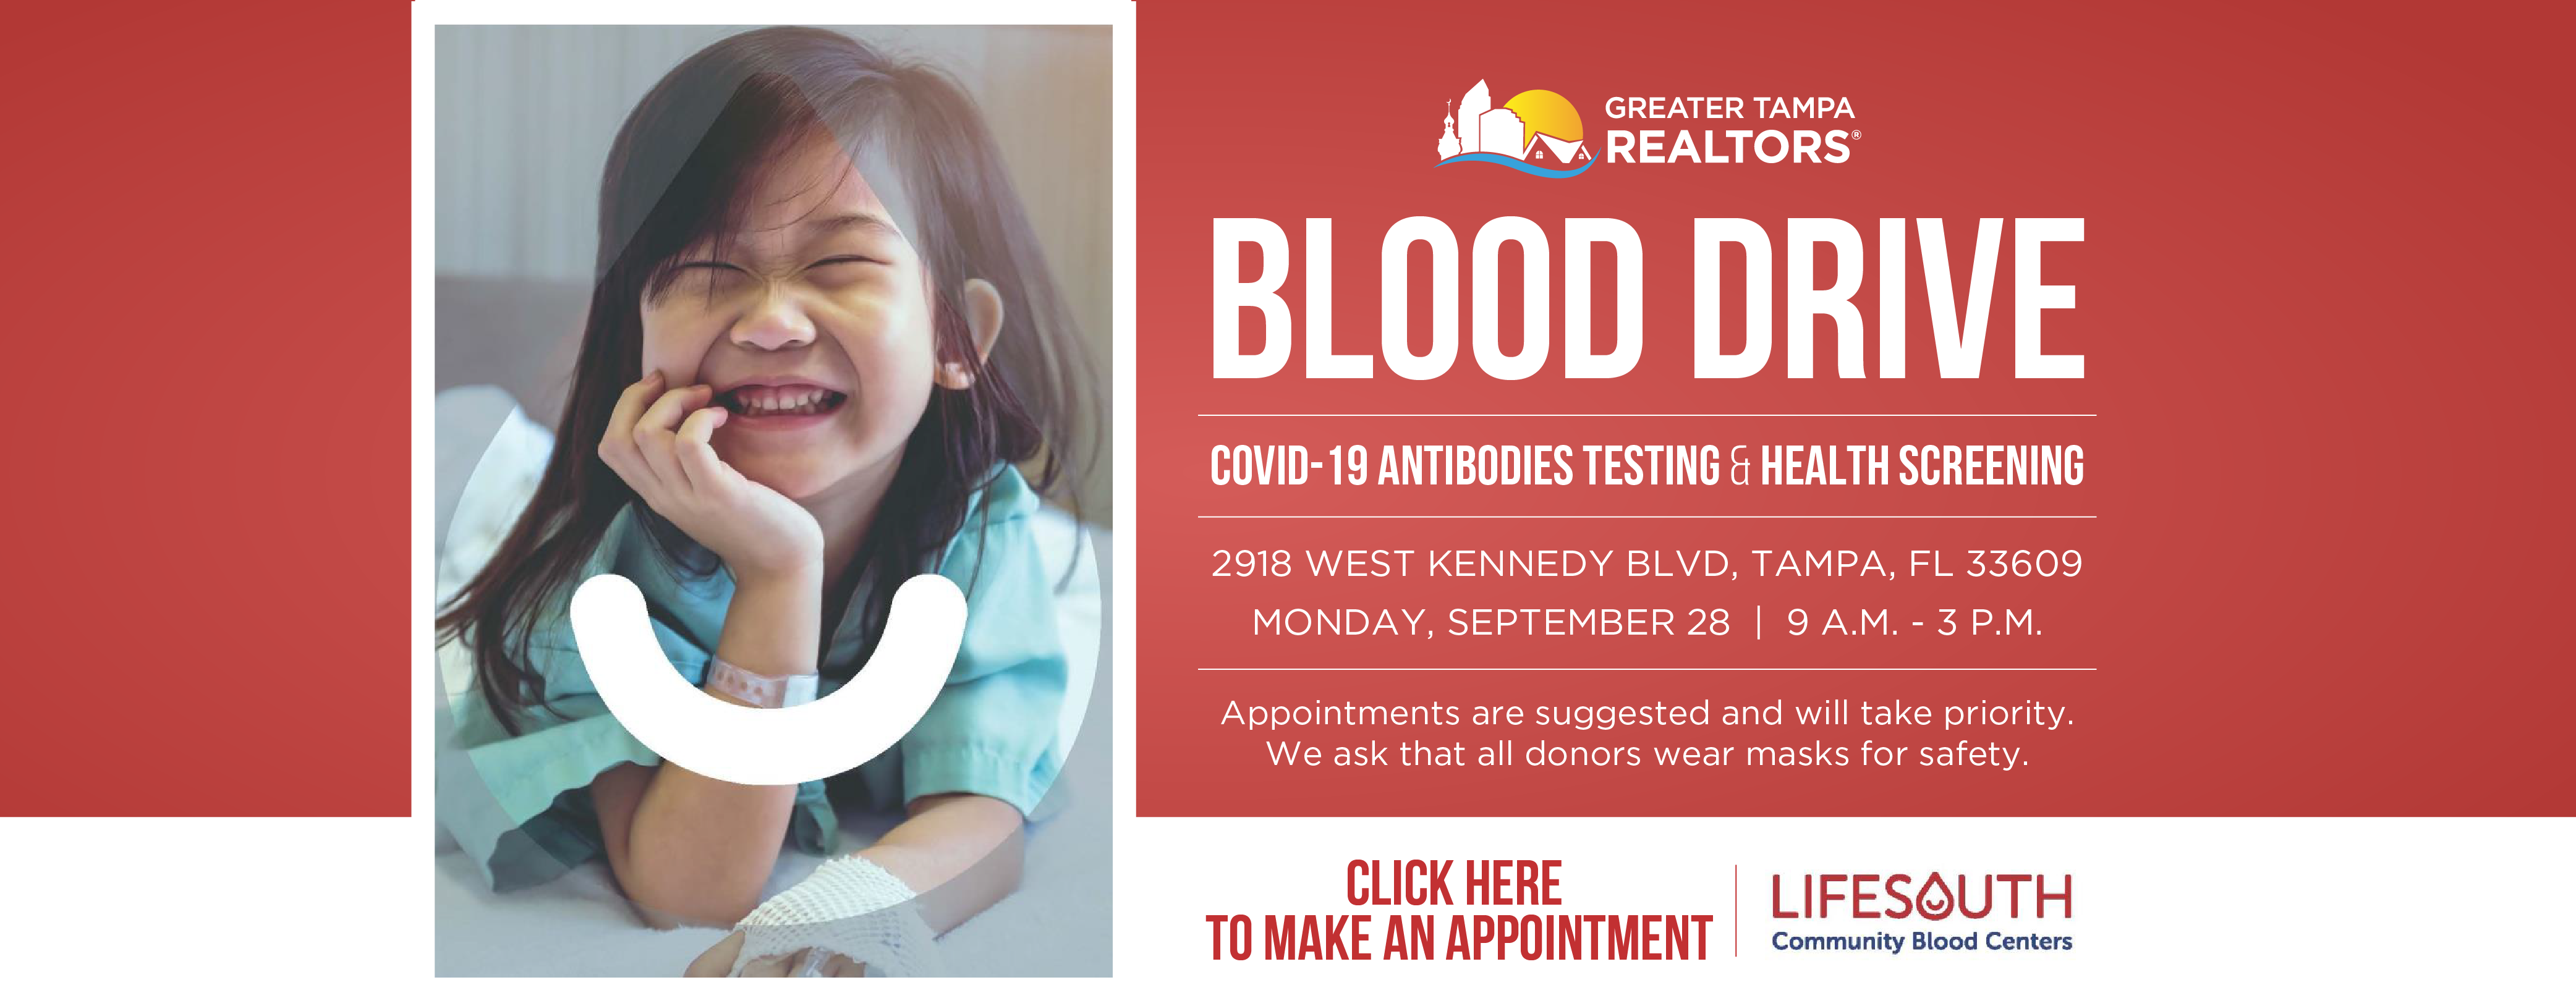 Greater Tampa Realtors is hosting a blood drive on Monday, September 28 from 9 a.m. - 3 p.m. Appointments are suggested and will take priority. We ask that all donors wear masks for safety. Click here to make an appointment.